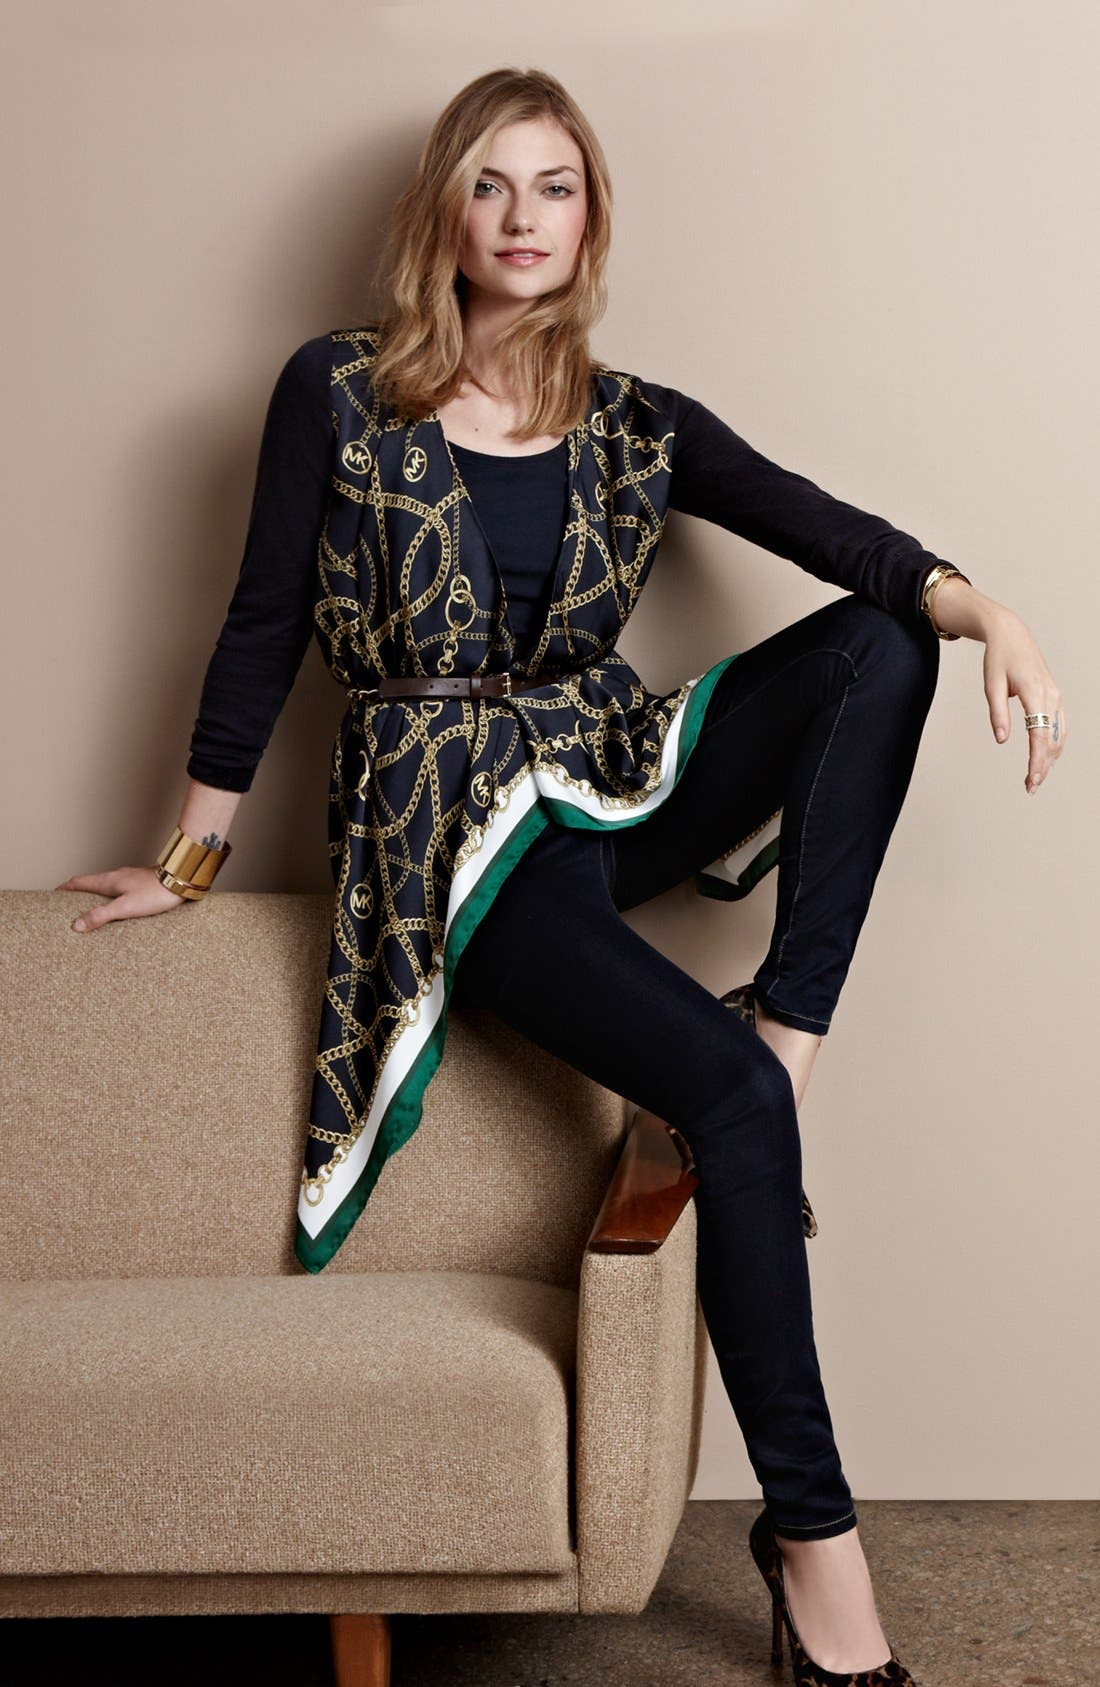 Alternate Image 1 Selected - MICHAEL Michael Kors Cardigan, Skinny Jeans & Accessories